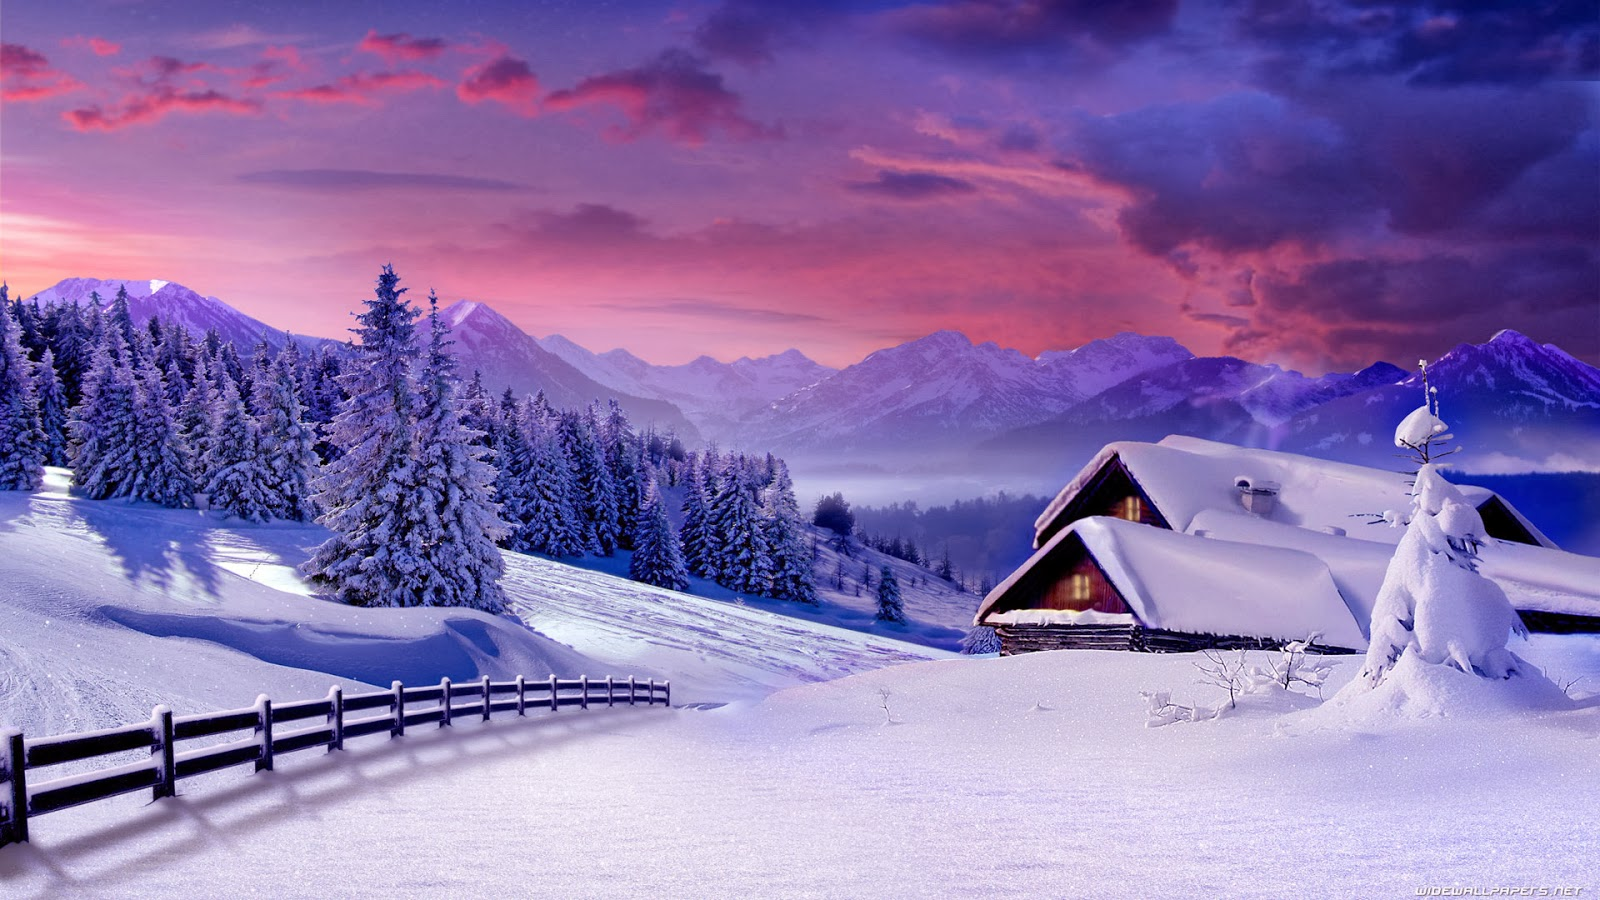 Desktop Backgrounds 4U Winter Scenes 1600x900